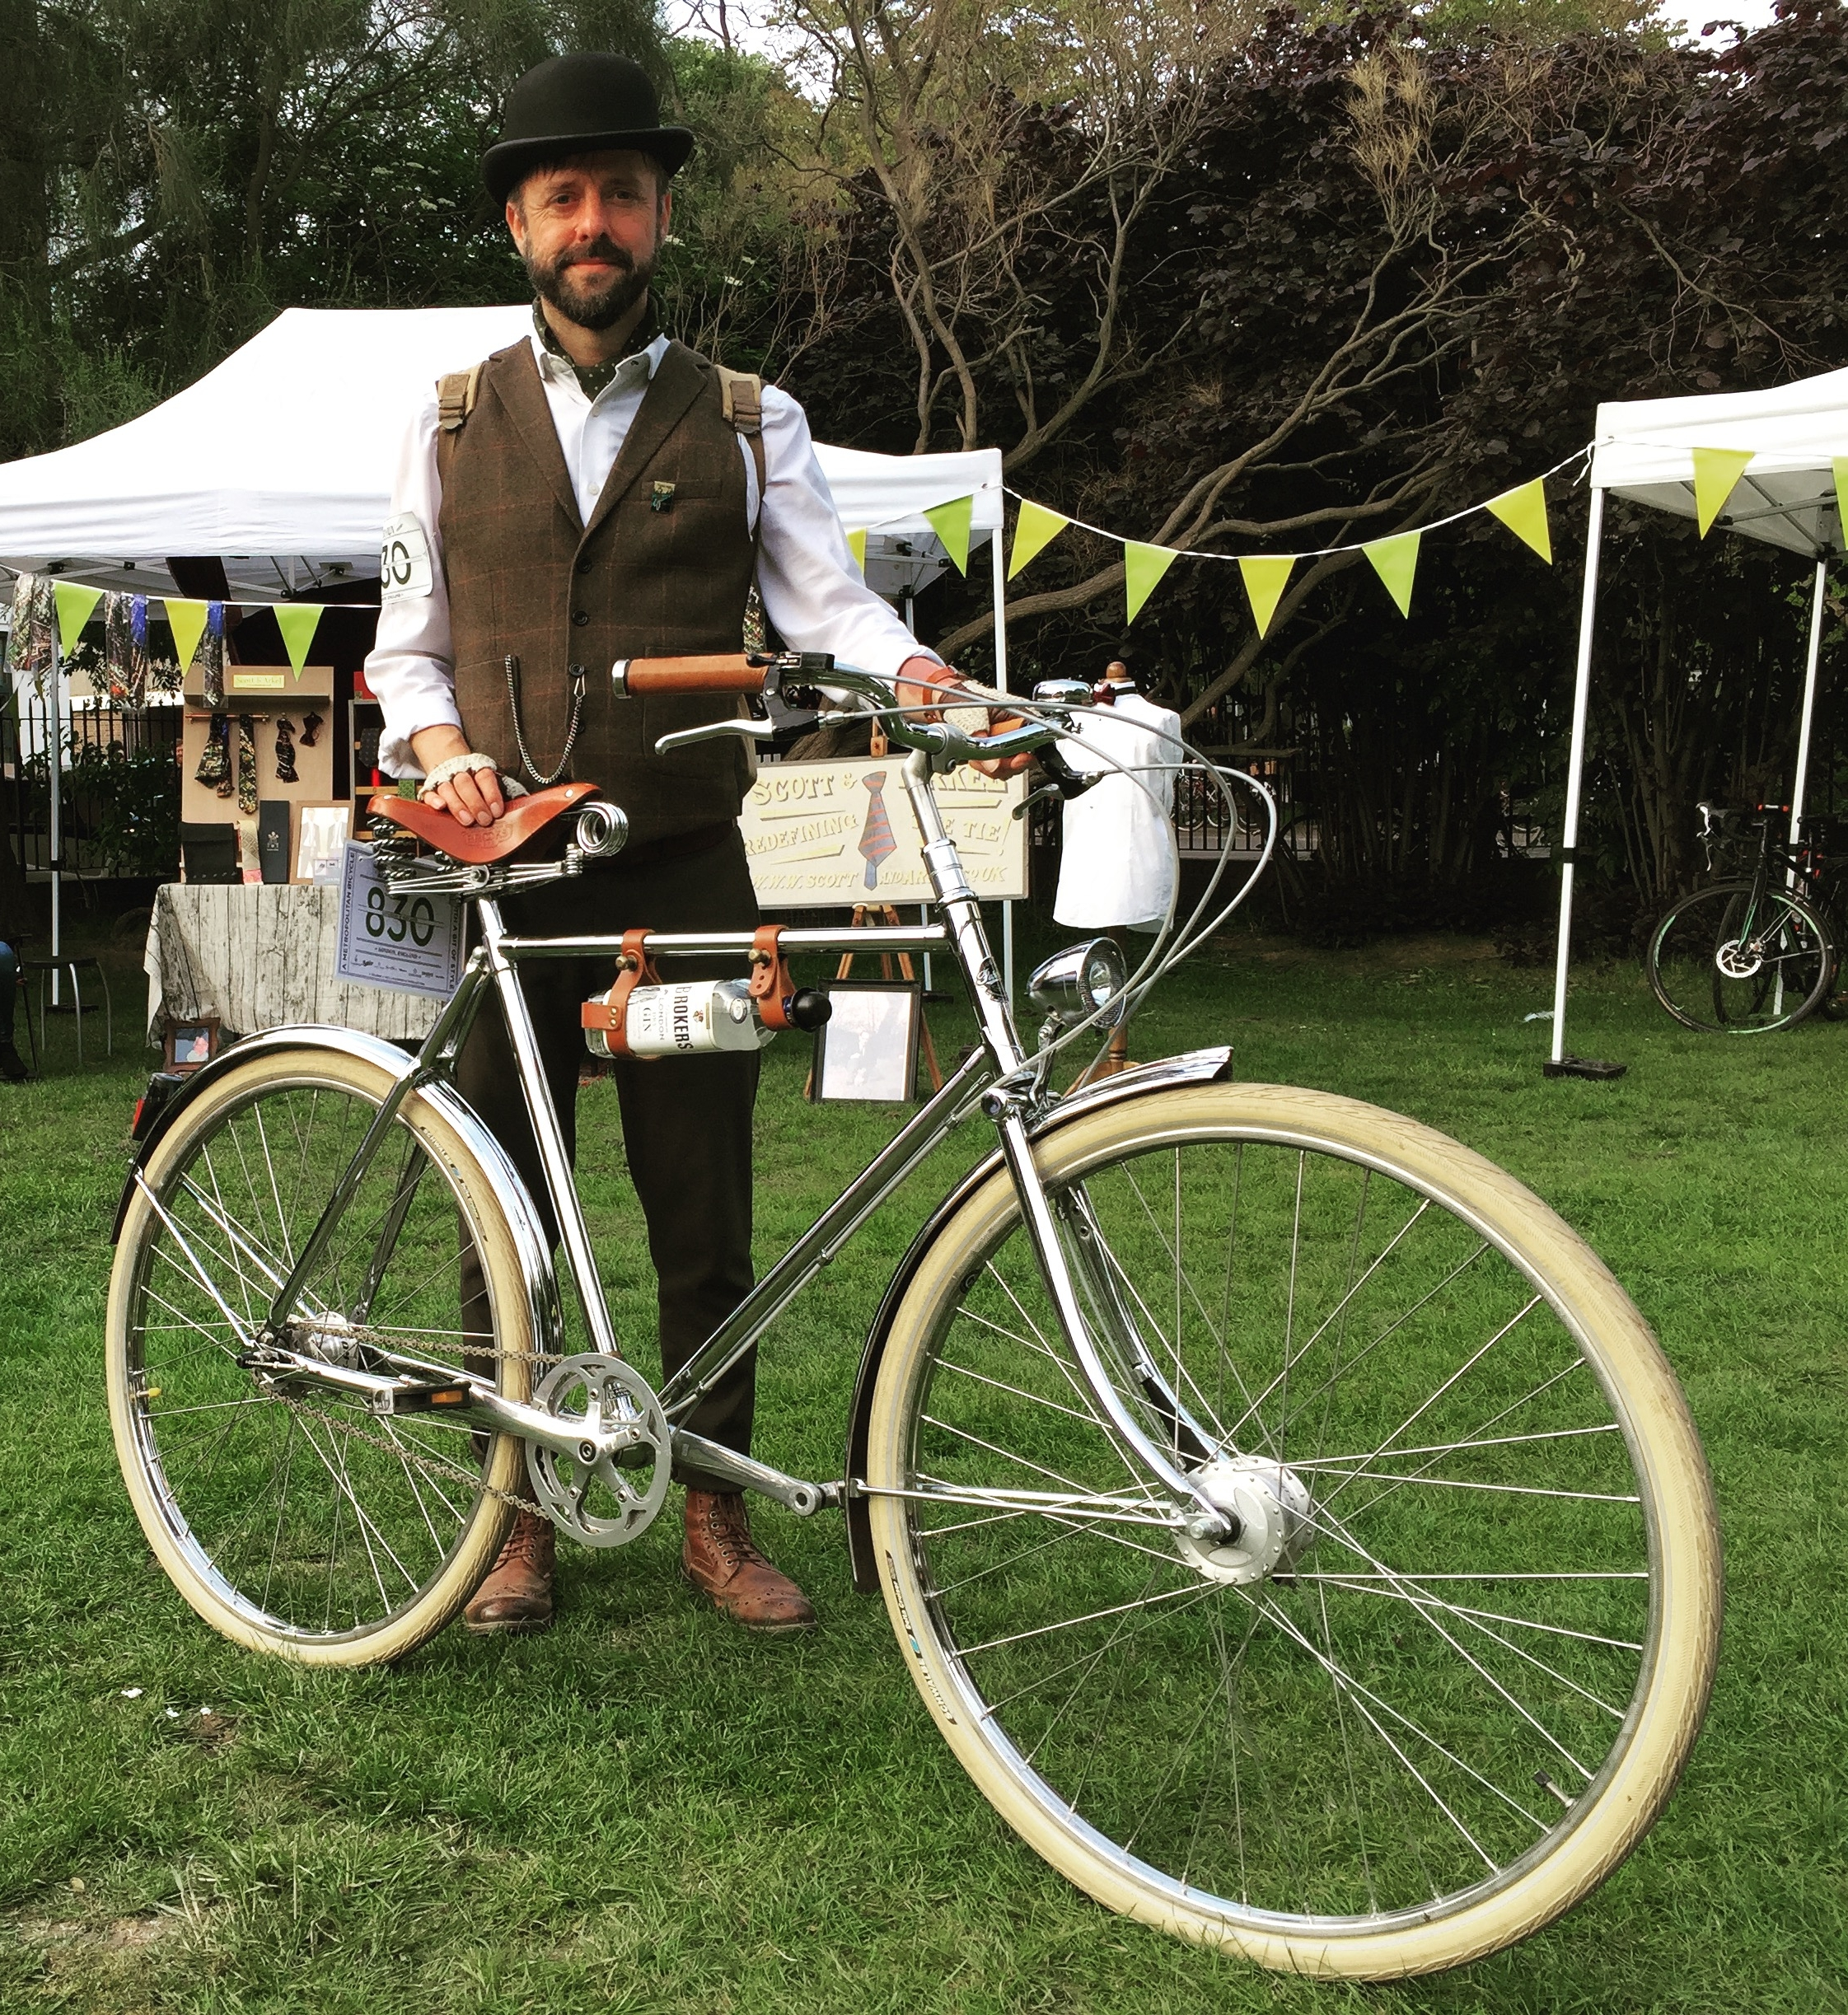 Keith with his magnificent Pashley Phantom at the Tweed Run.